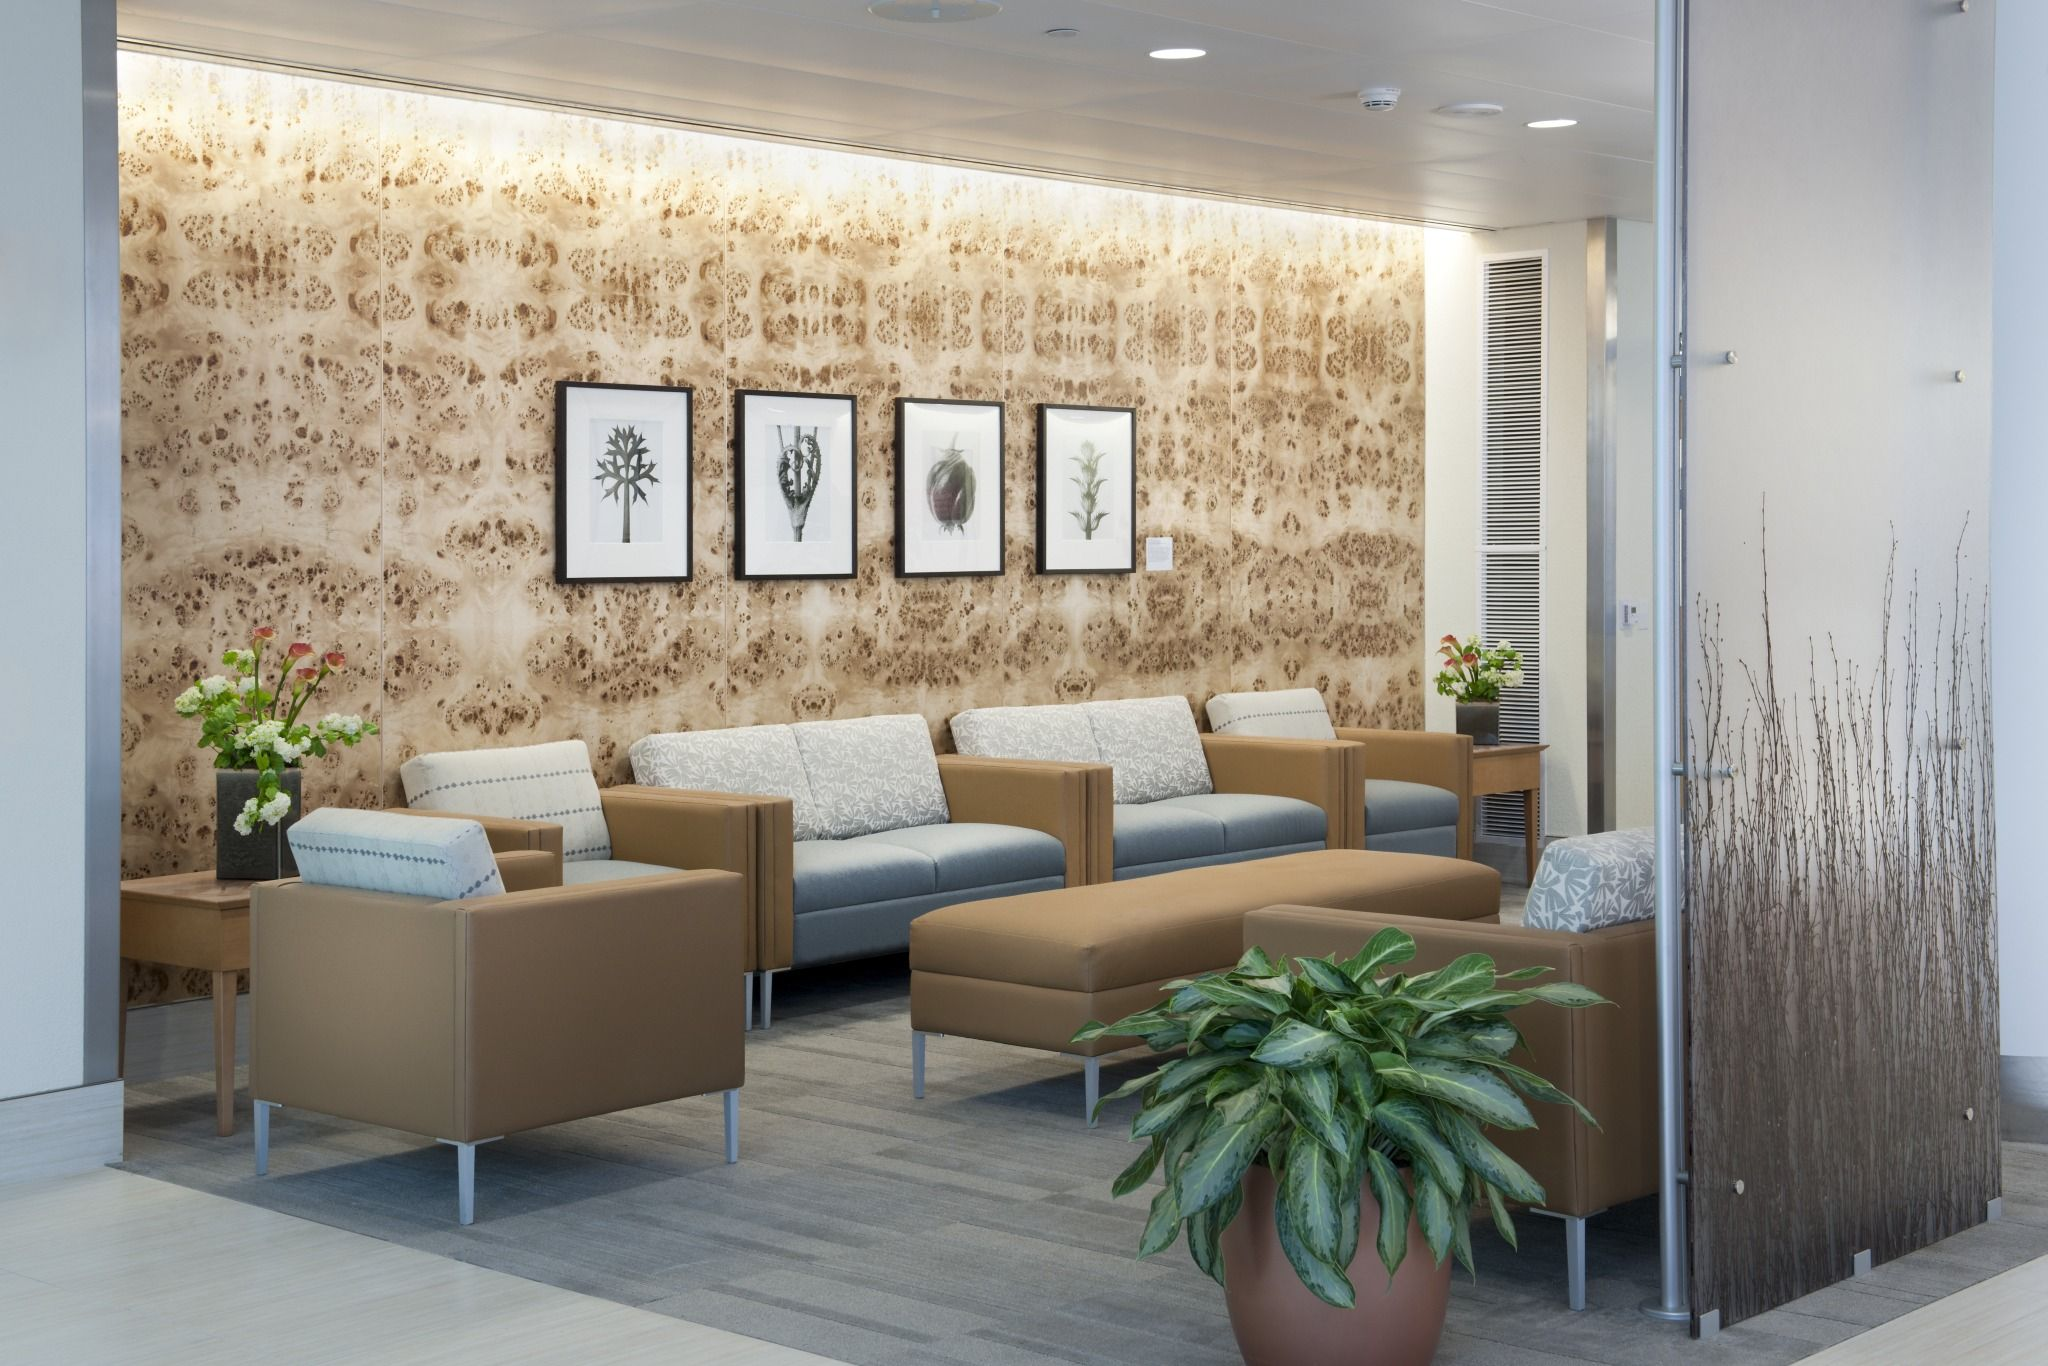 ambulatory waiting area - seidman cancer center | featured